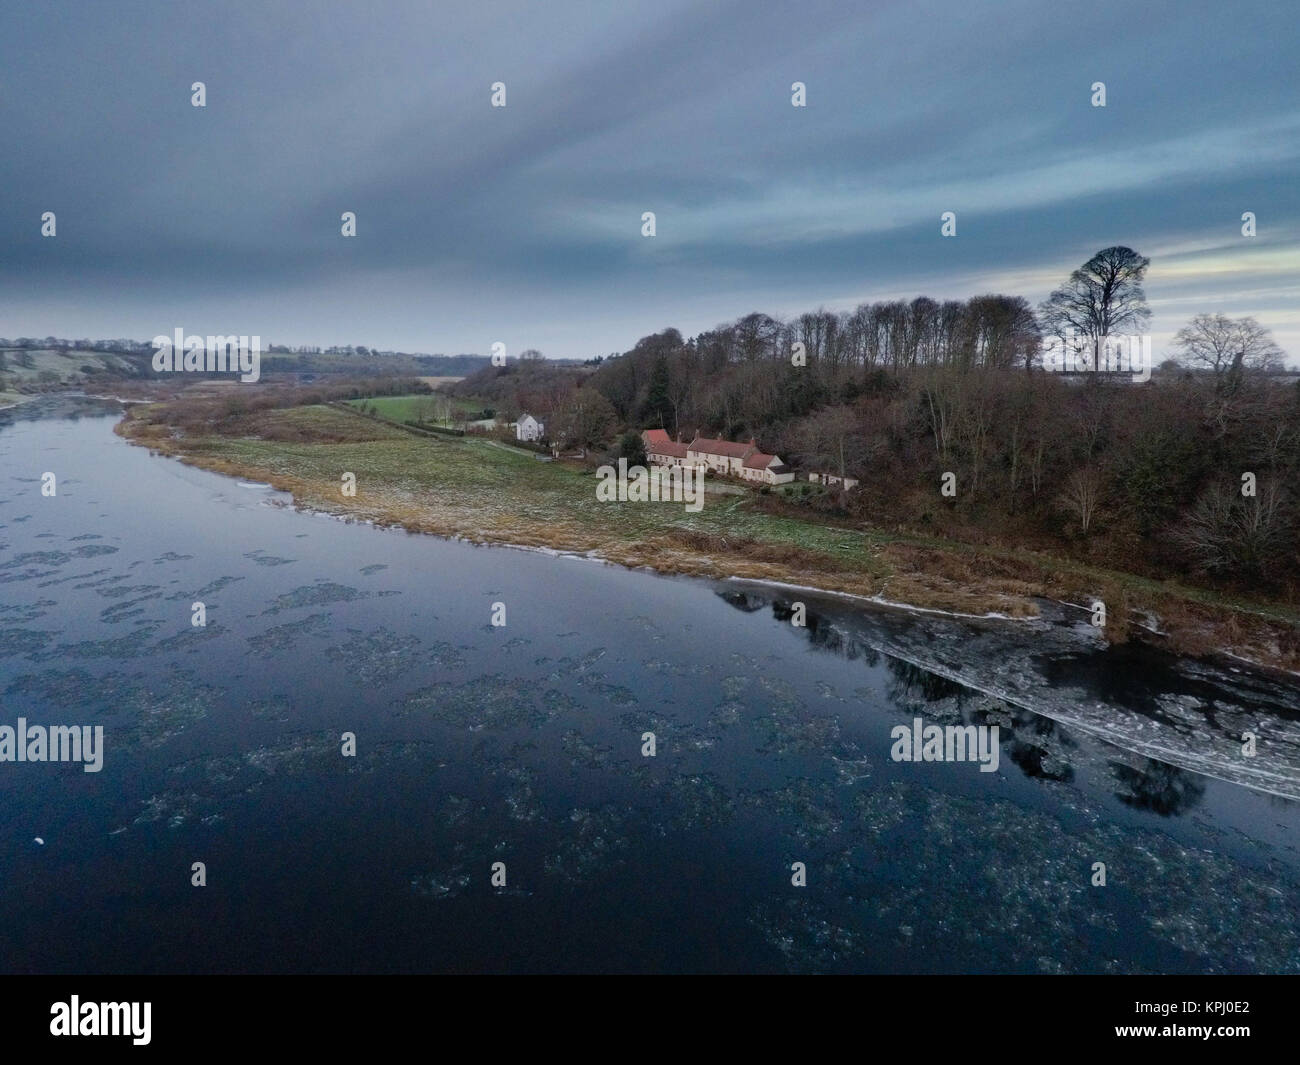 Aerial view of Norham Boathouse on the River Tweed - Stock Image